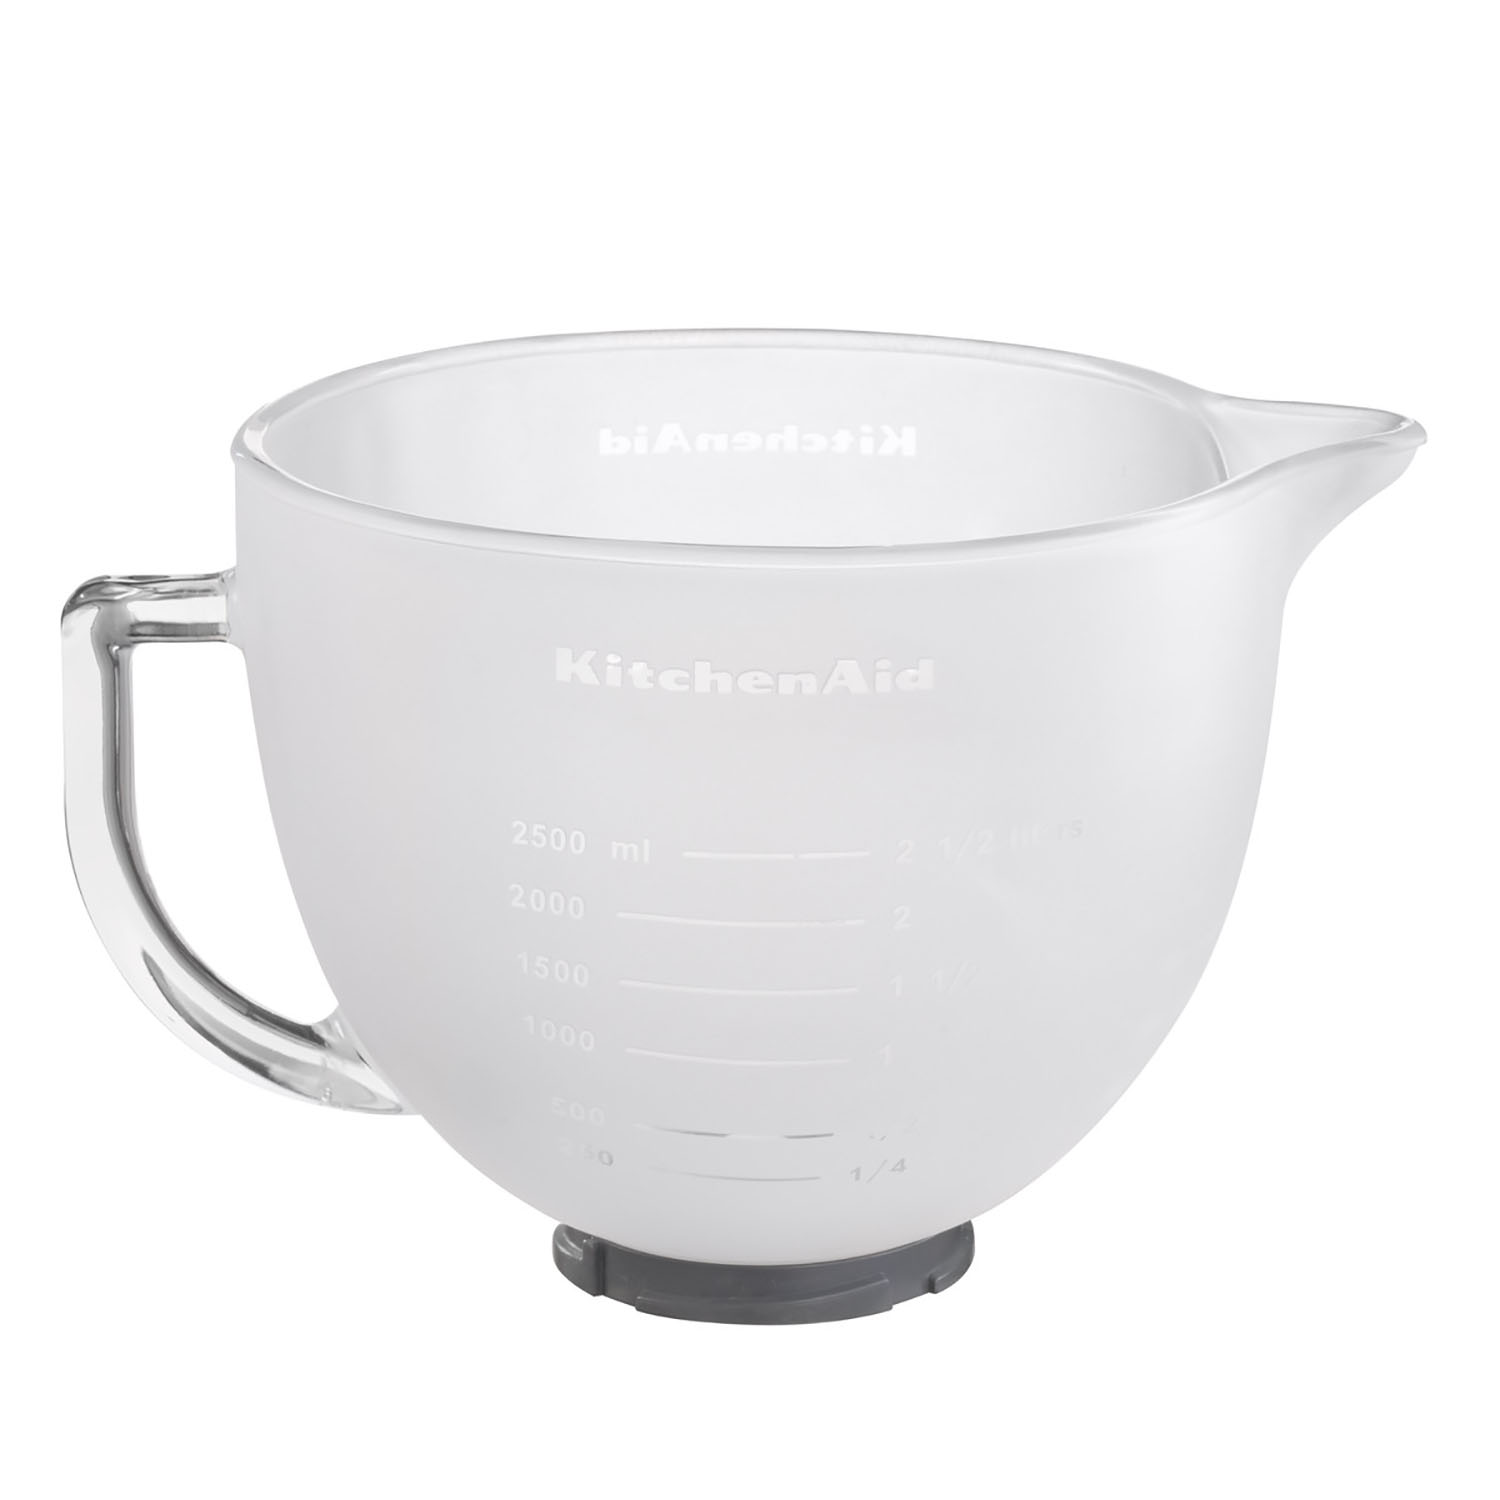 Kitchen Aid 5k5gbf 4.8l Frosted Glass Bowl, Frosted Glass